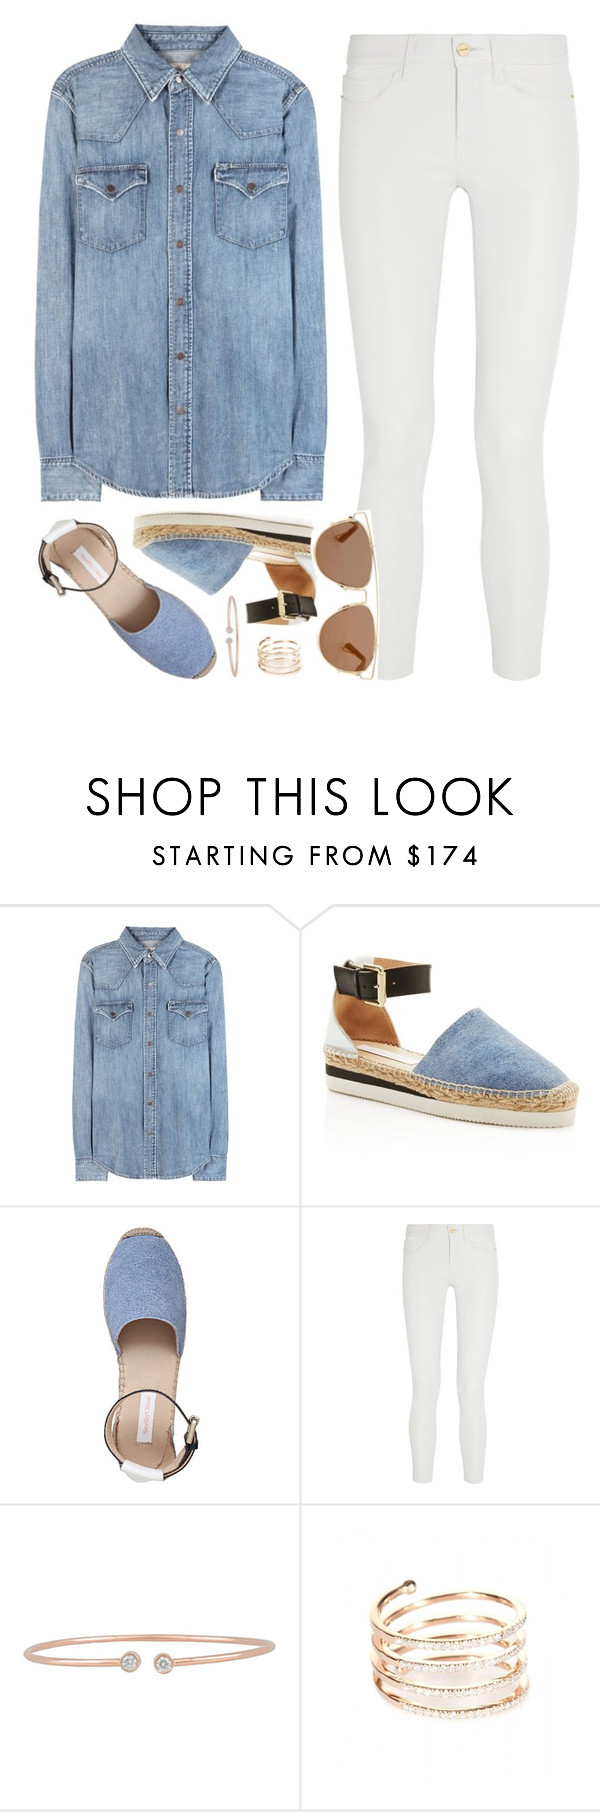 """OOTD"" by felytery ❤ liked on Polyvore featuring Polo Ralph Lauren, See by Chloé, Frame Denim, Forevermark, STONE and Christian Dior"